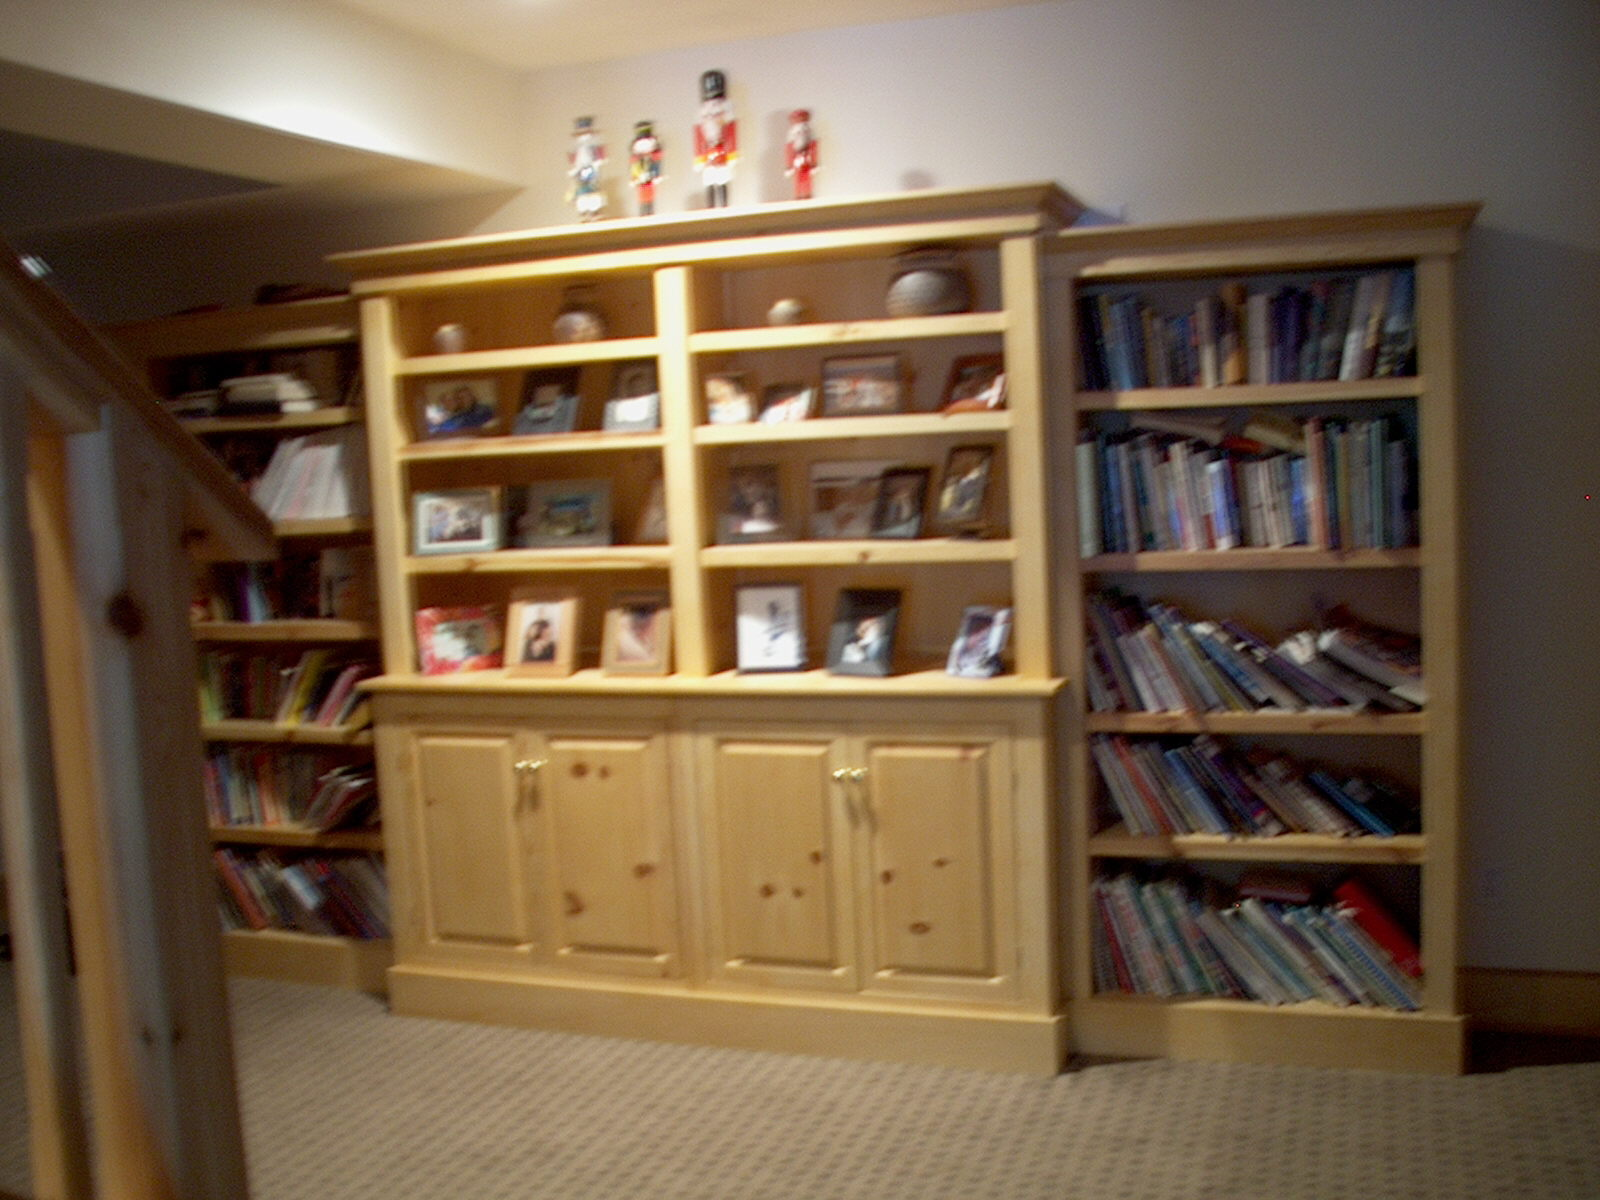 to design white books cool bookcases ceiling wooden ideas bookcase awesome wall floor bookshelves bookshelf